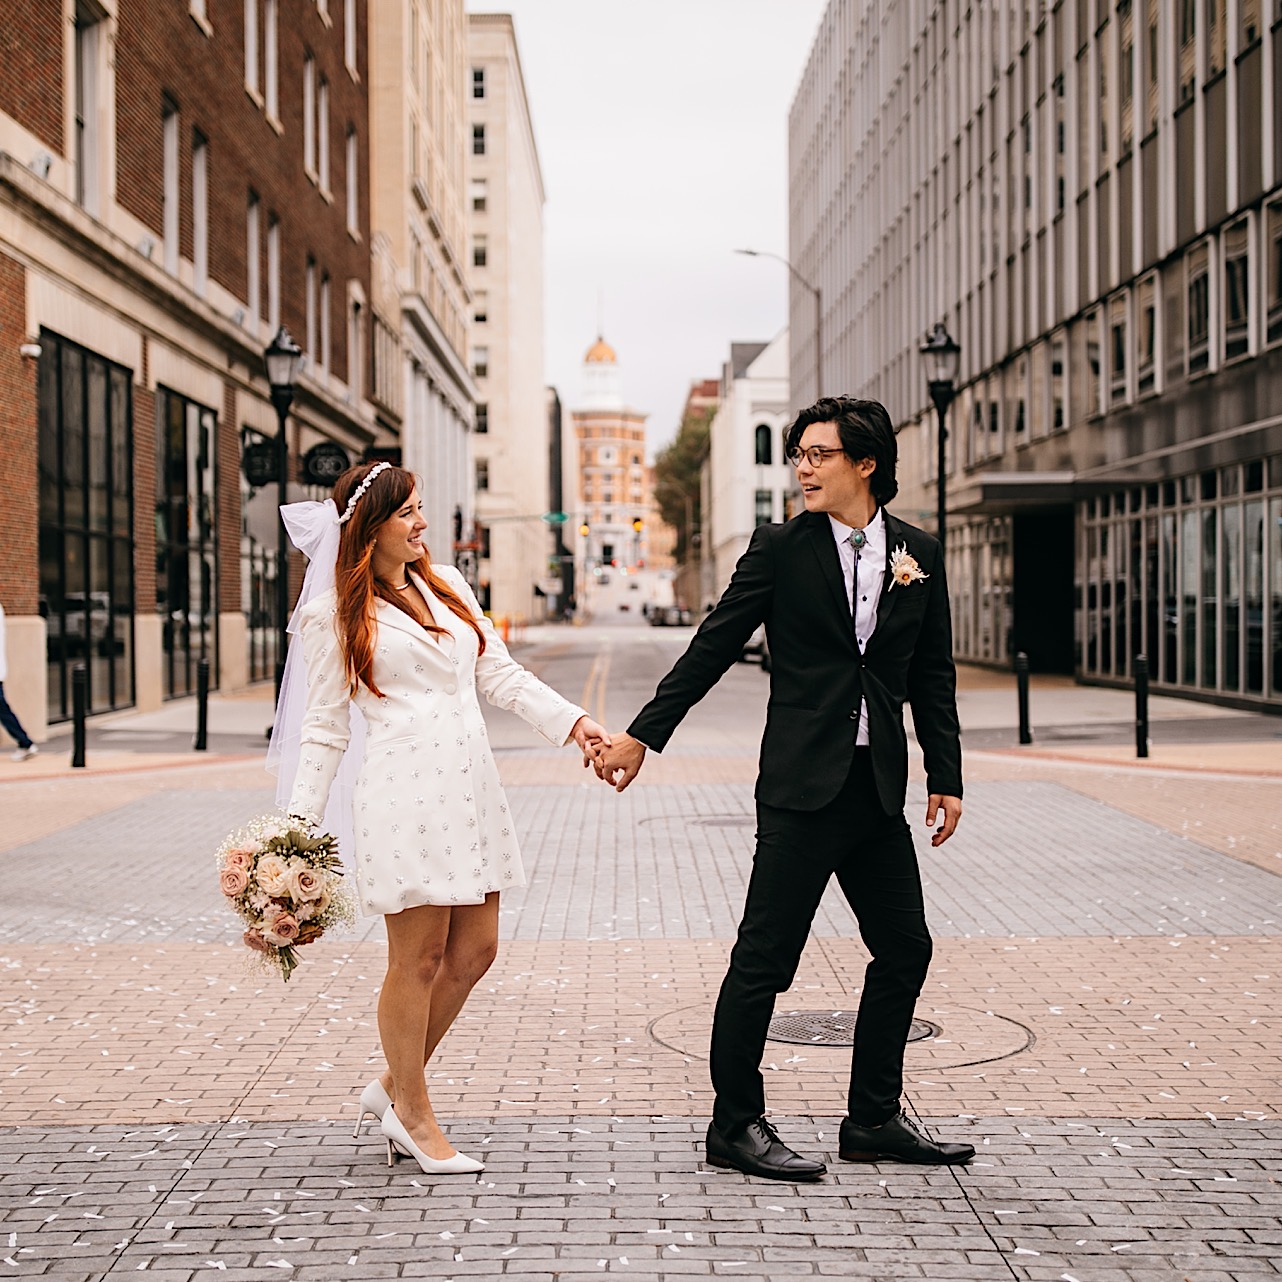 A bride and groom stand holding hands and smiling at each other in a downtown street.